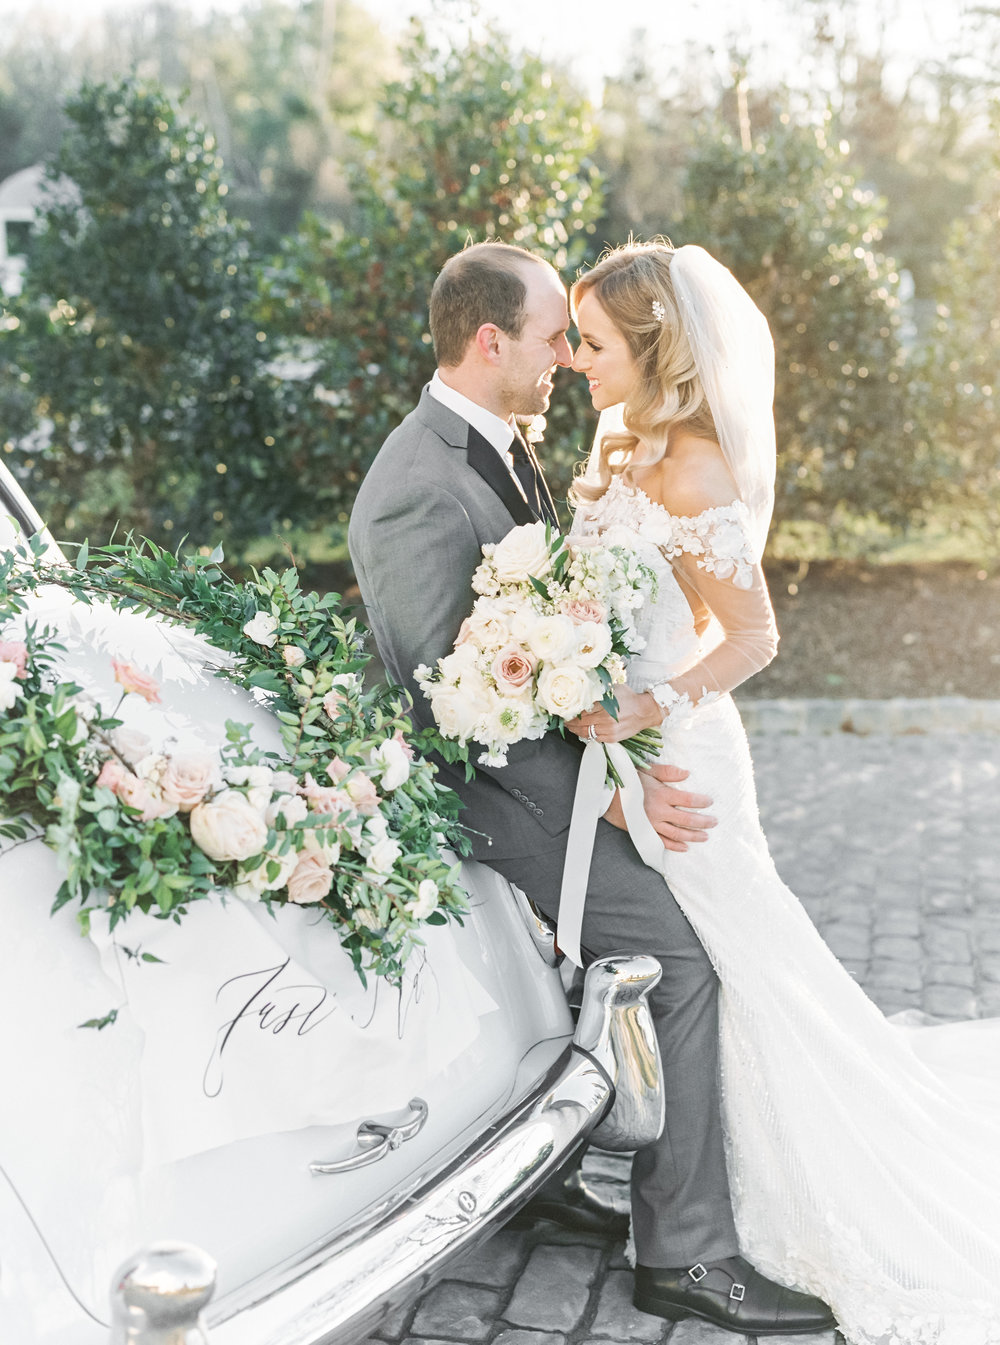 A Romantic Winter Wedding at Park Chateau in New Jersey Featured on Style Me Pretty-- Photography: Lauren Fair // Calligraphy: Caitlin Jane Calligraphy // Stationery: Papertree Studio // Wedding Planner: Shannon Wellington // Florist:  Fresh Designs Florist